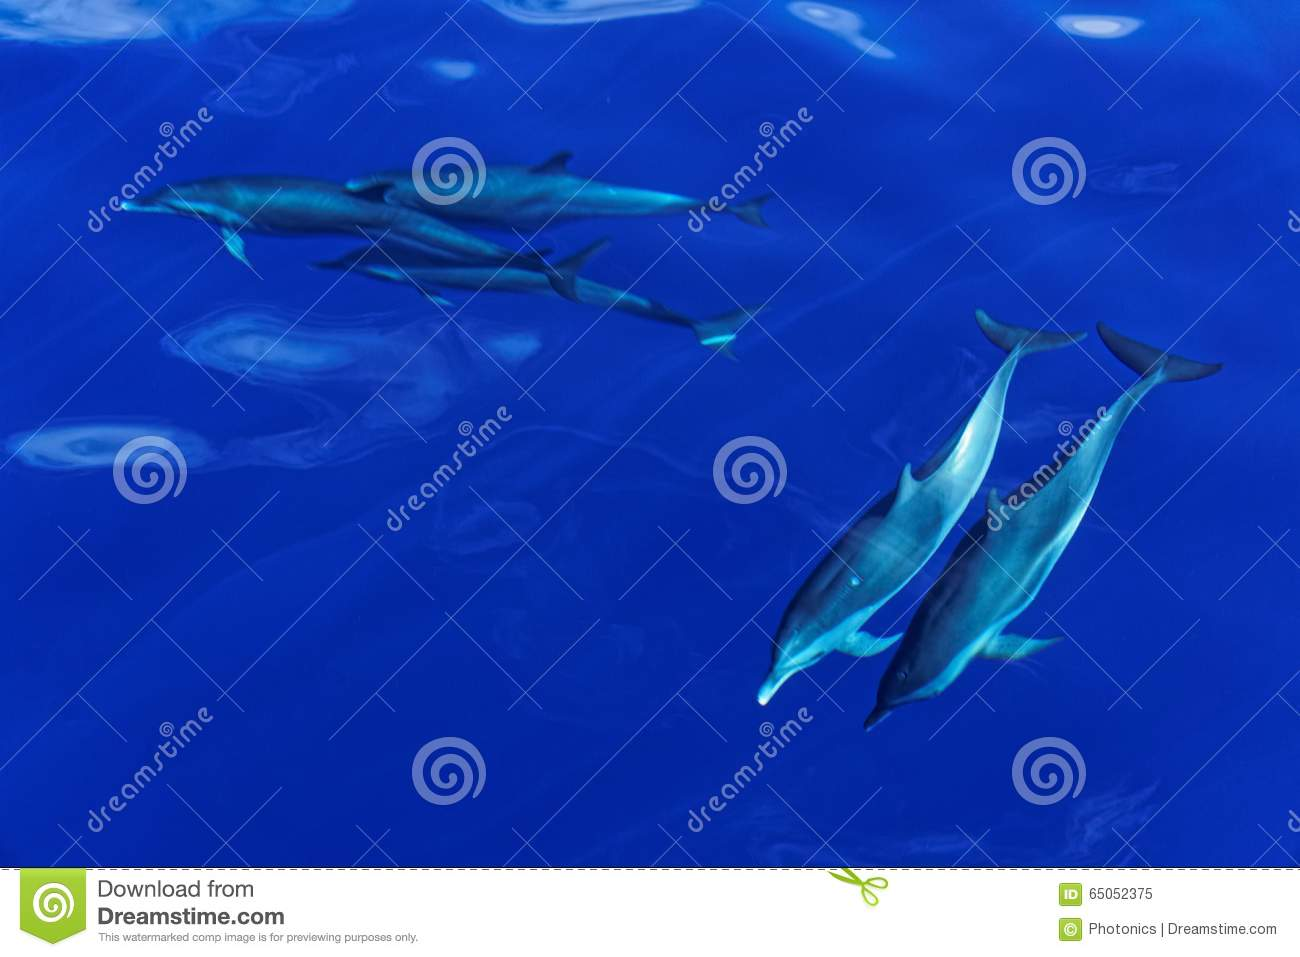 Striped Dolphins of the Carribian Island of Dominica